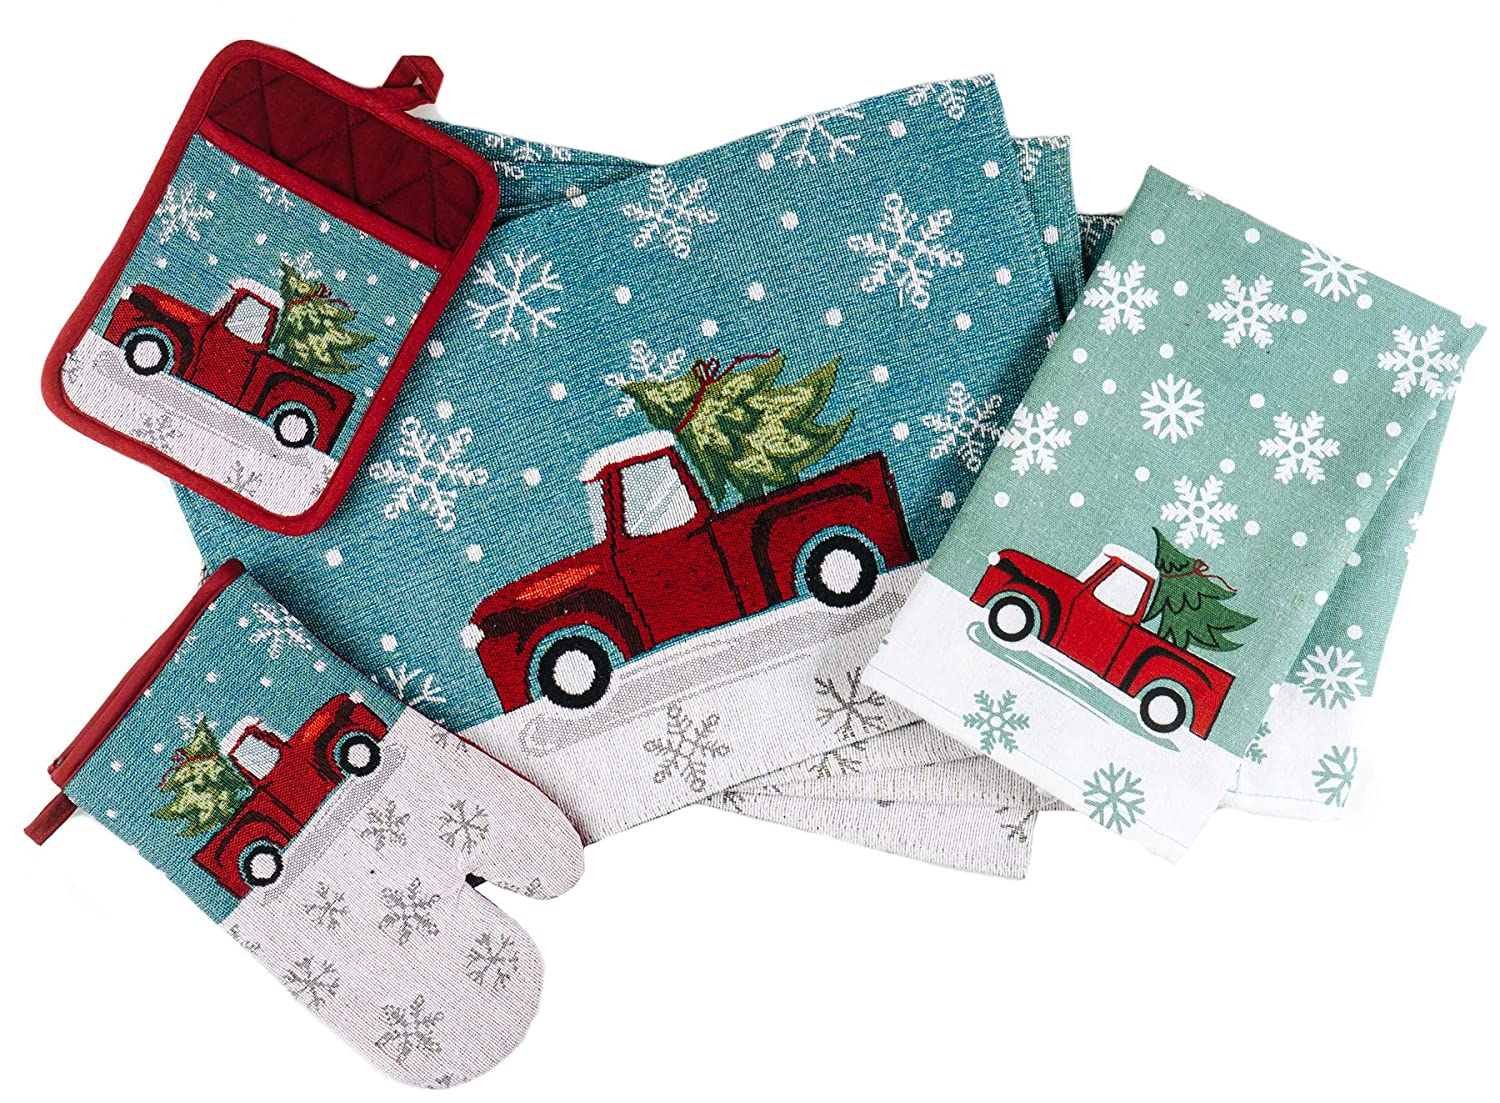 CraftMore Red Truck Gift Set 4 Placemats 1 Towel 1 Pot Holder and 1 Oven Mitt